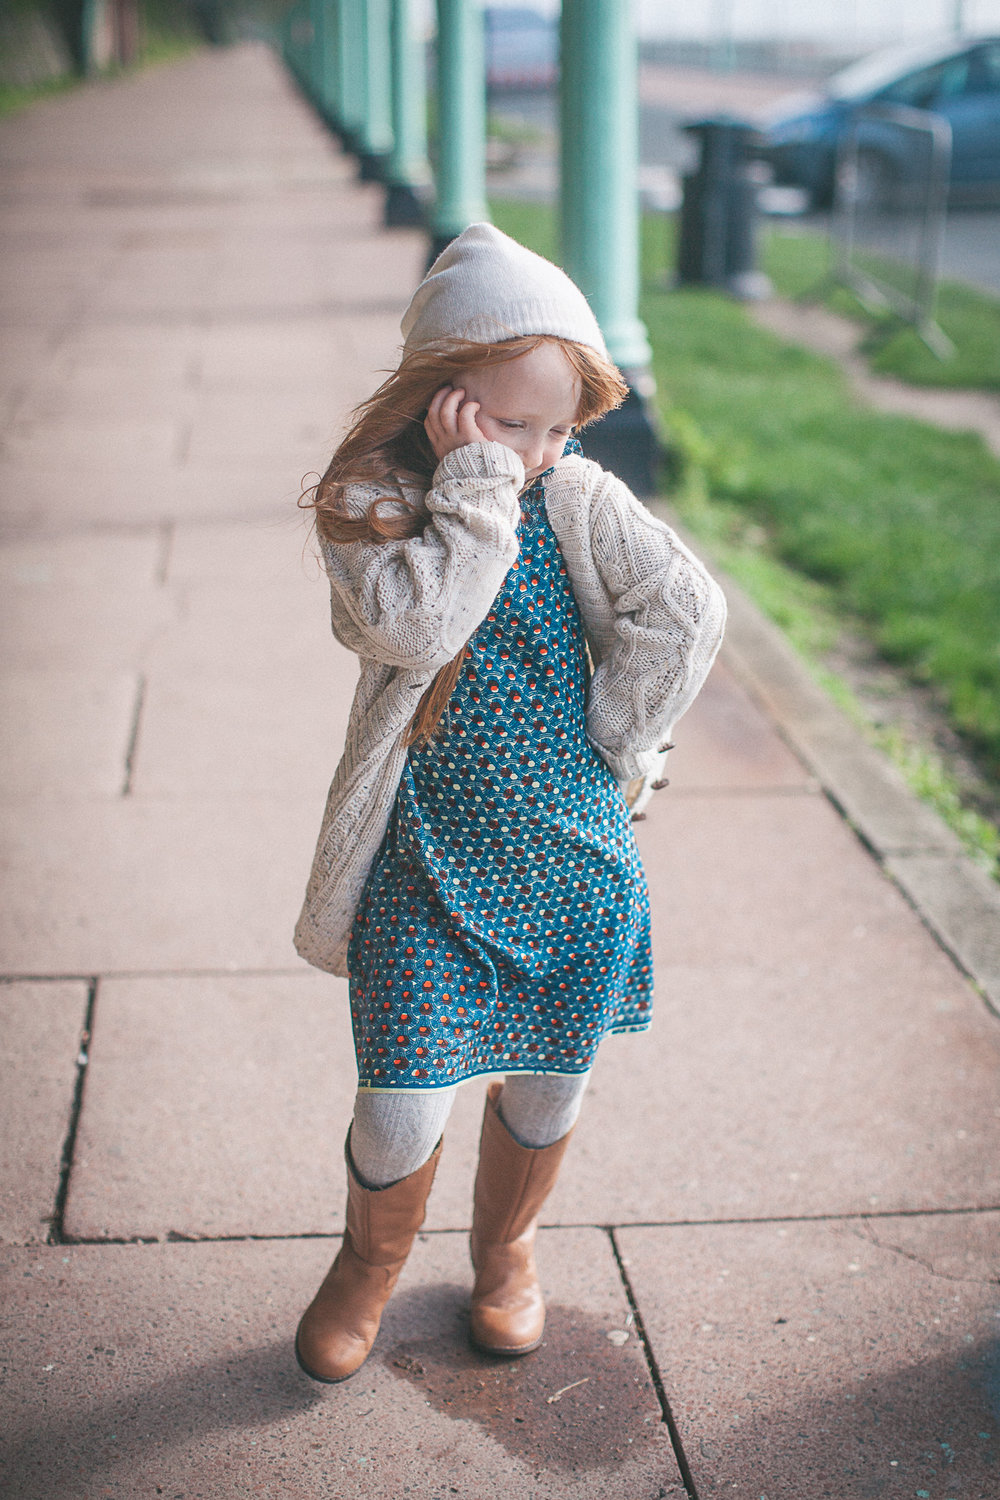 ethical_childrens_clothing_231013_011.jpg